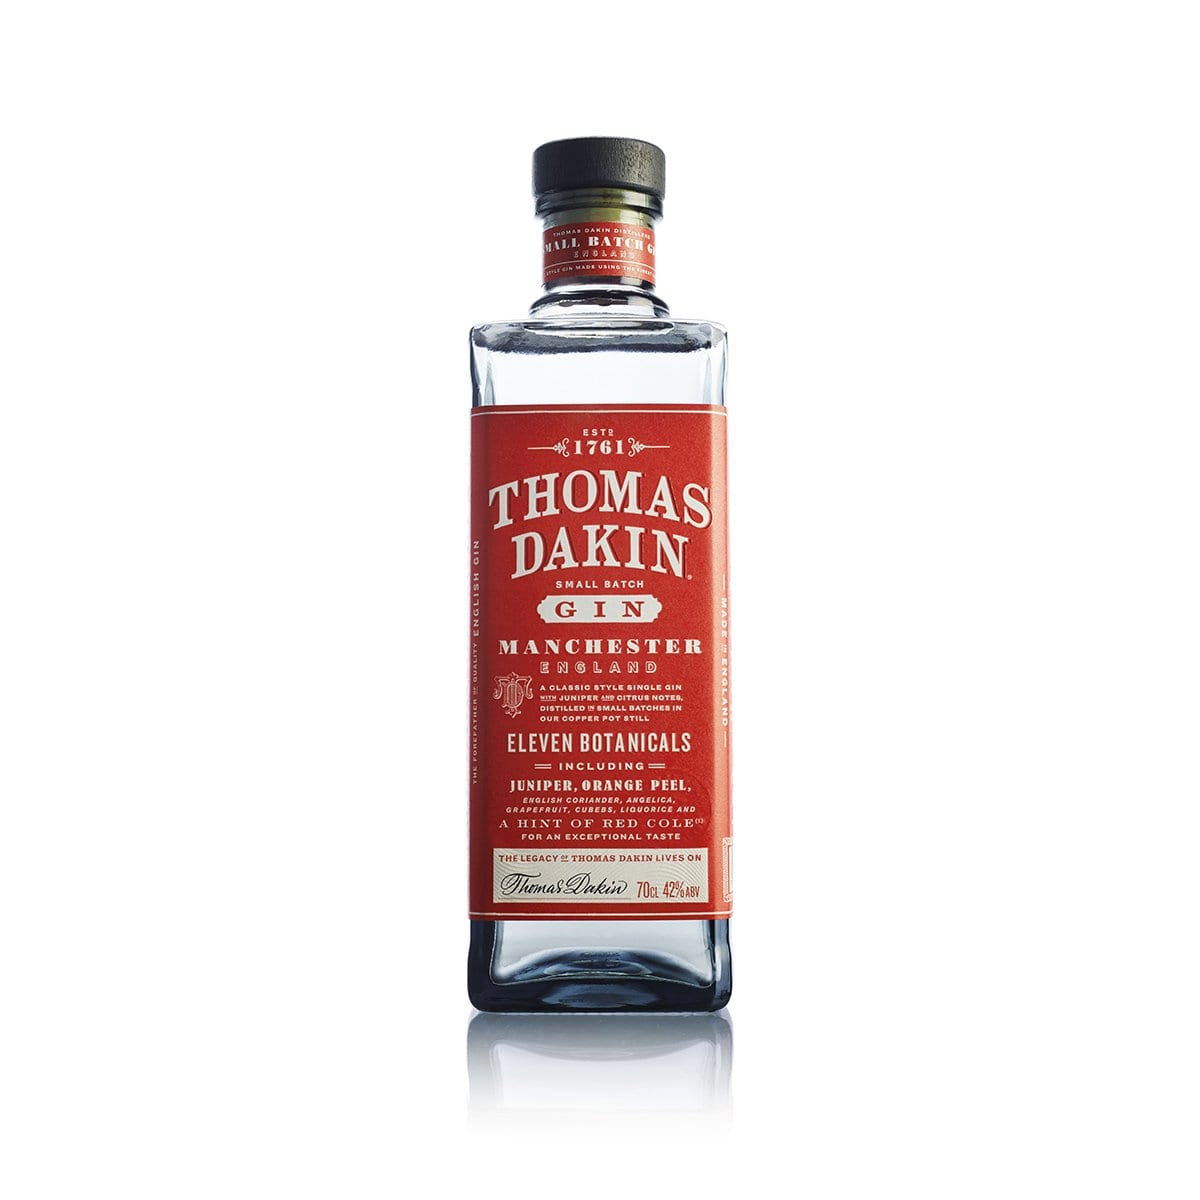 Thomas Dakin Gin Bottle